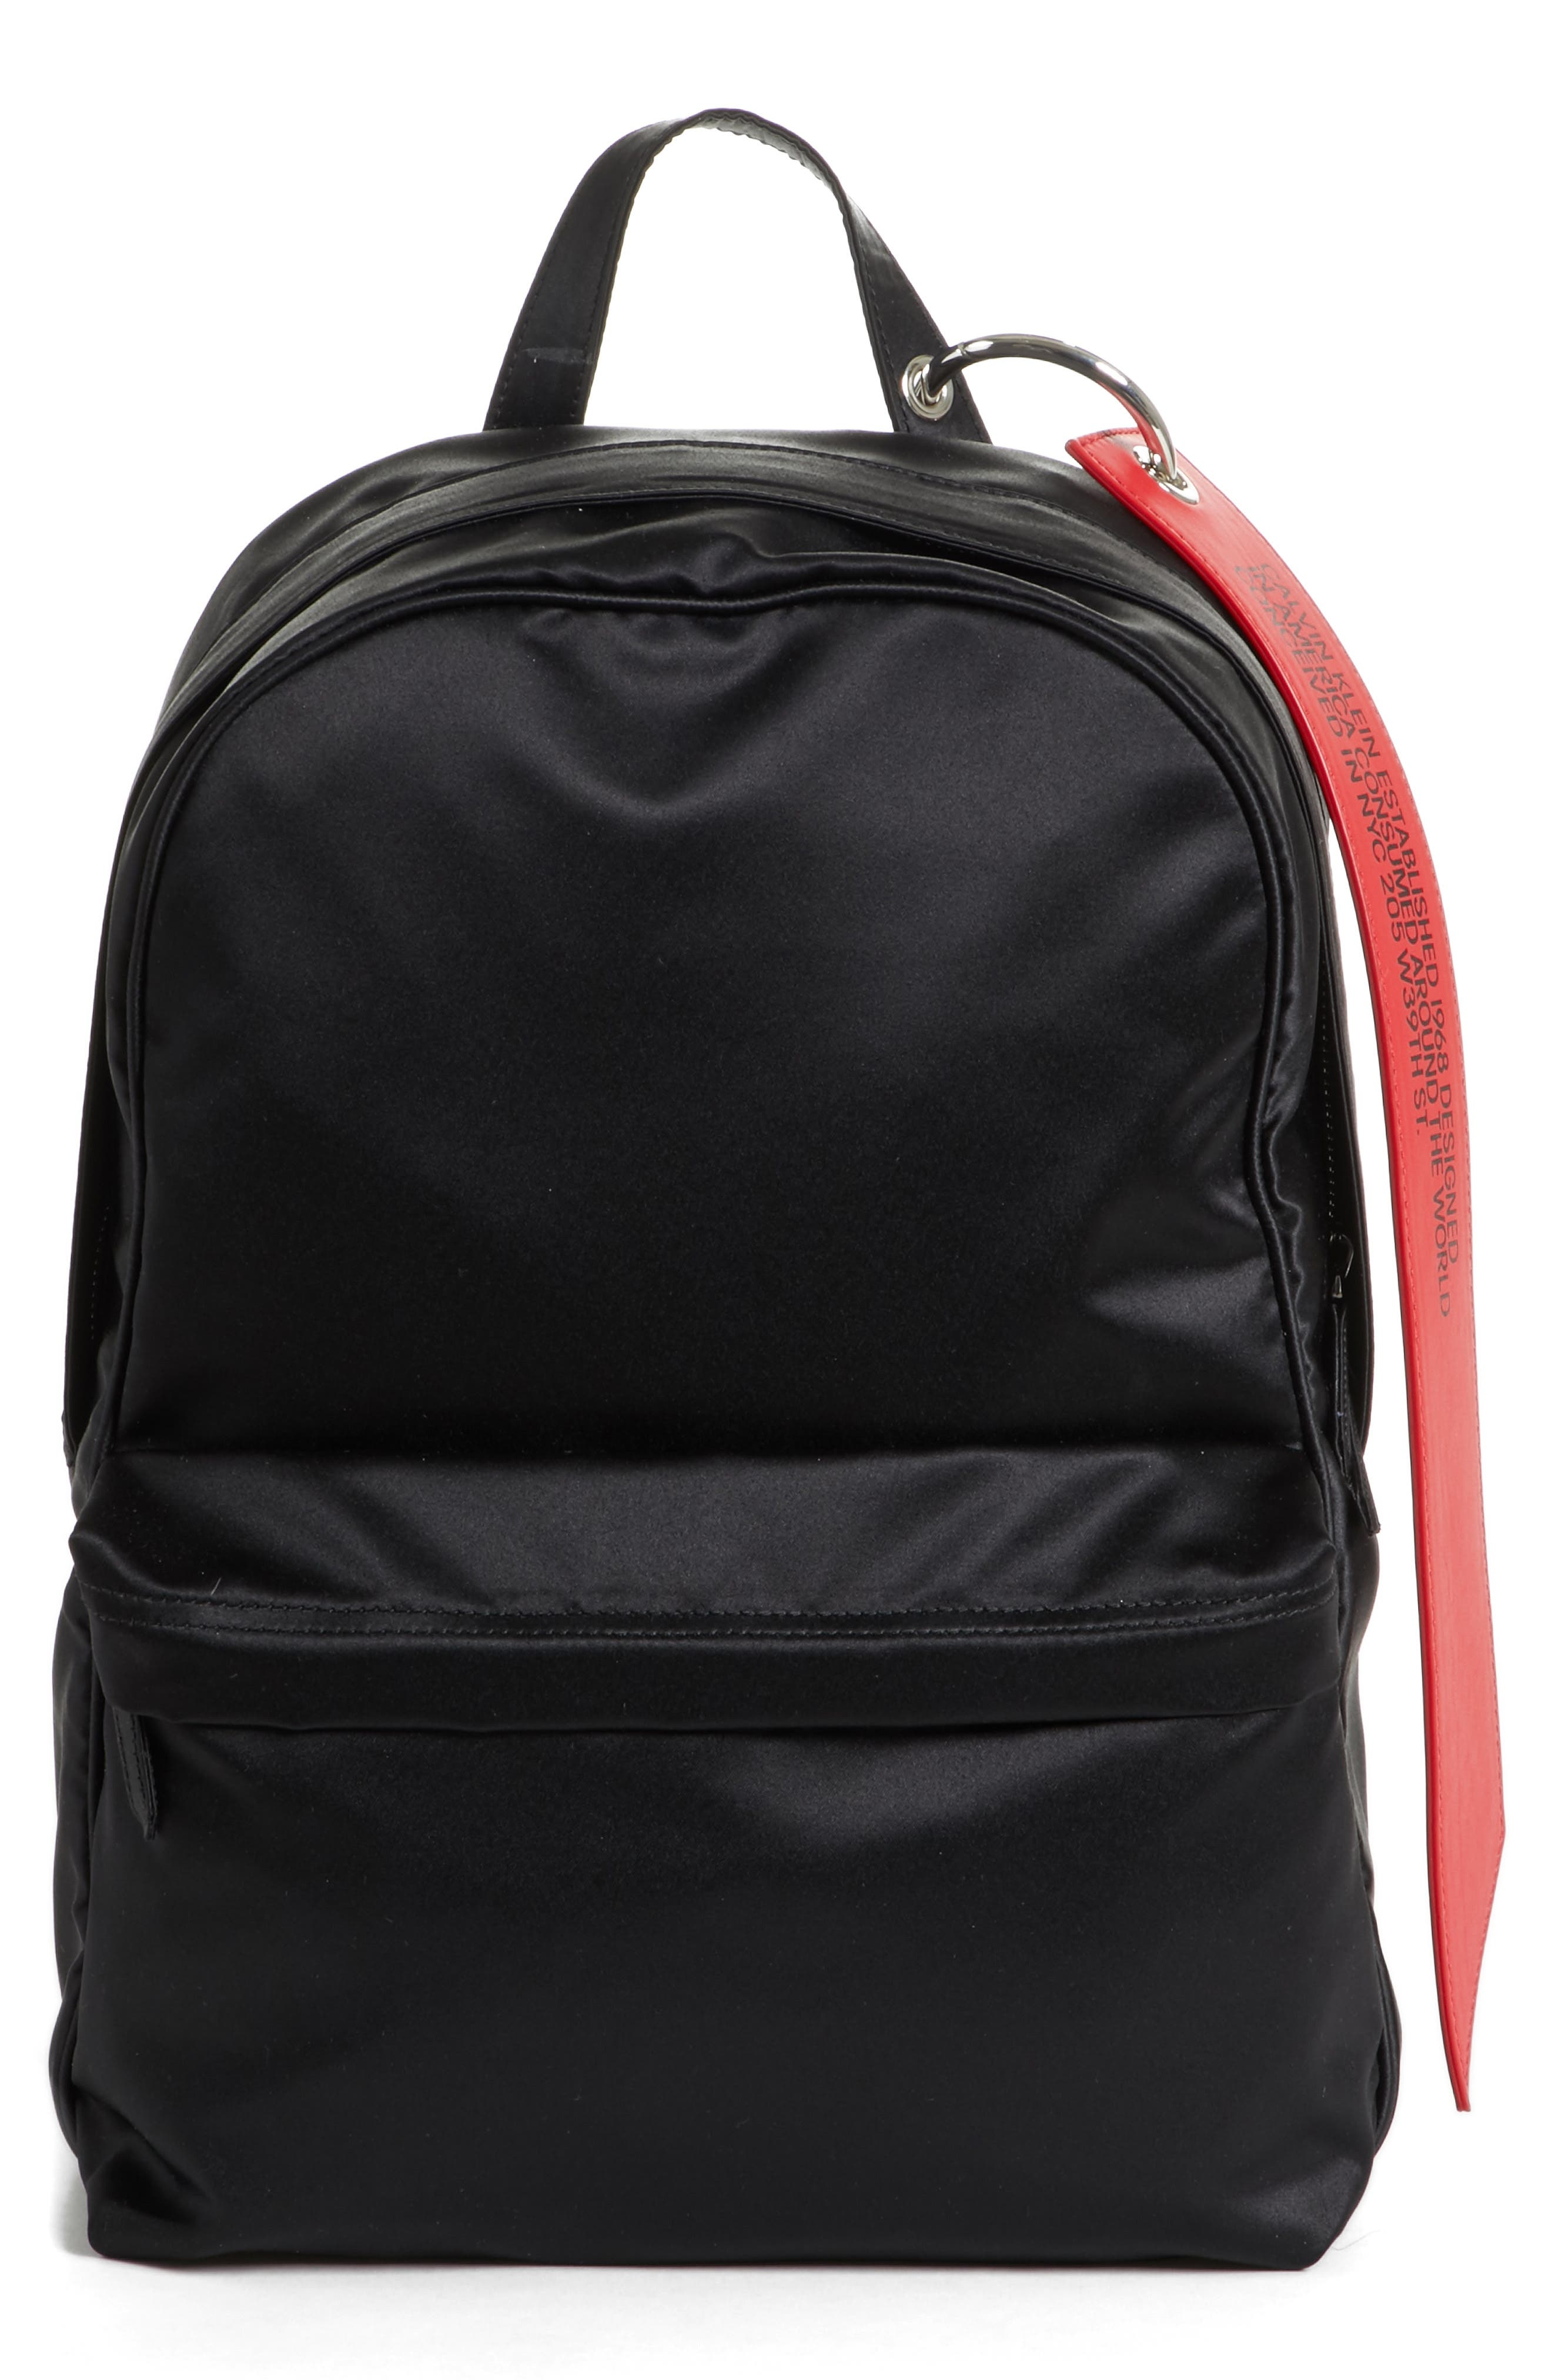 x Andy Warhol Foundation Nylon Backpack,                             Main thumbnail 1, color,                             Black/ Red/ Black